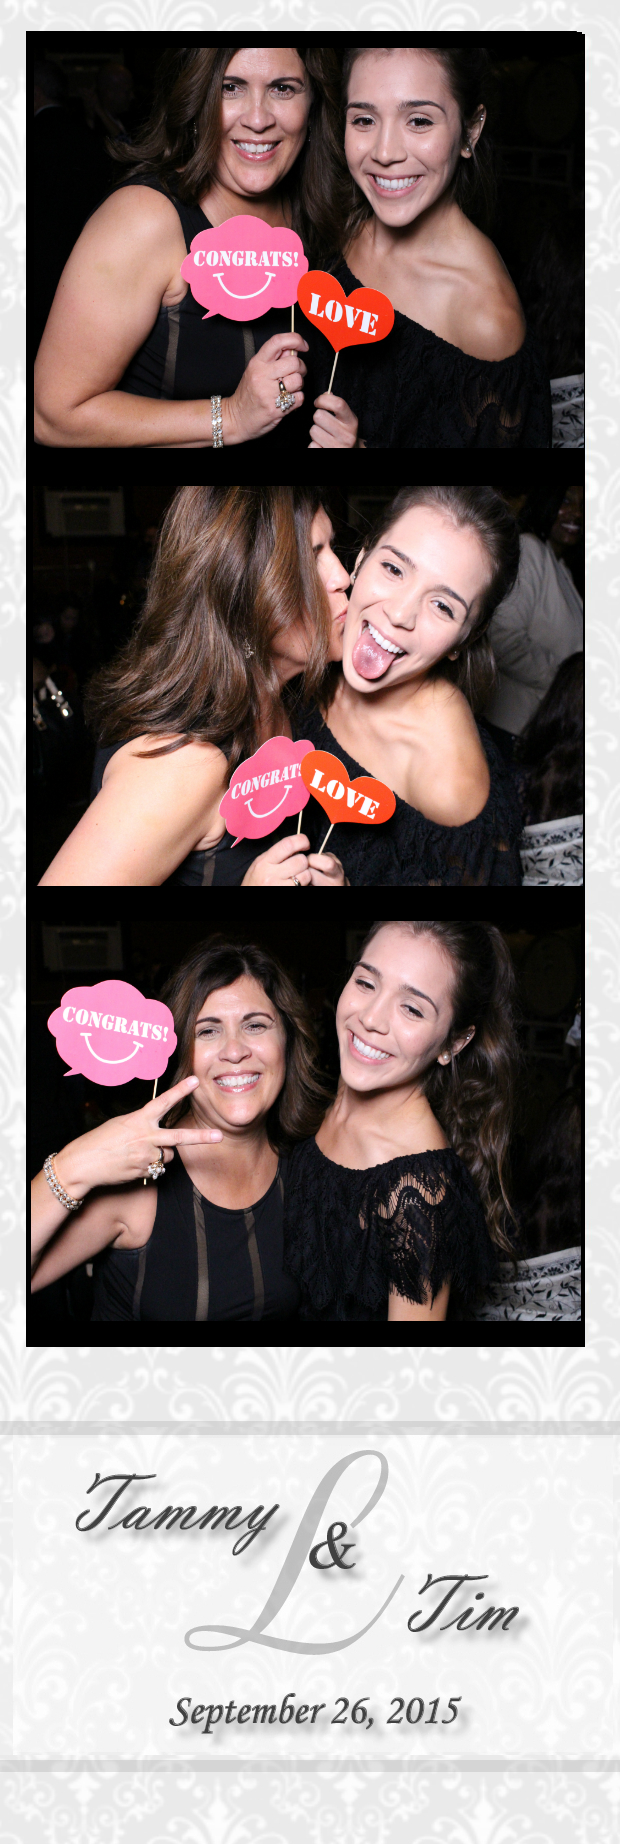 Guest House Events Photo Booth Strips T&T (26).jpg